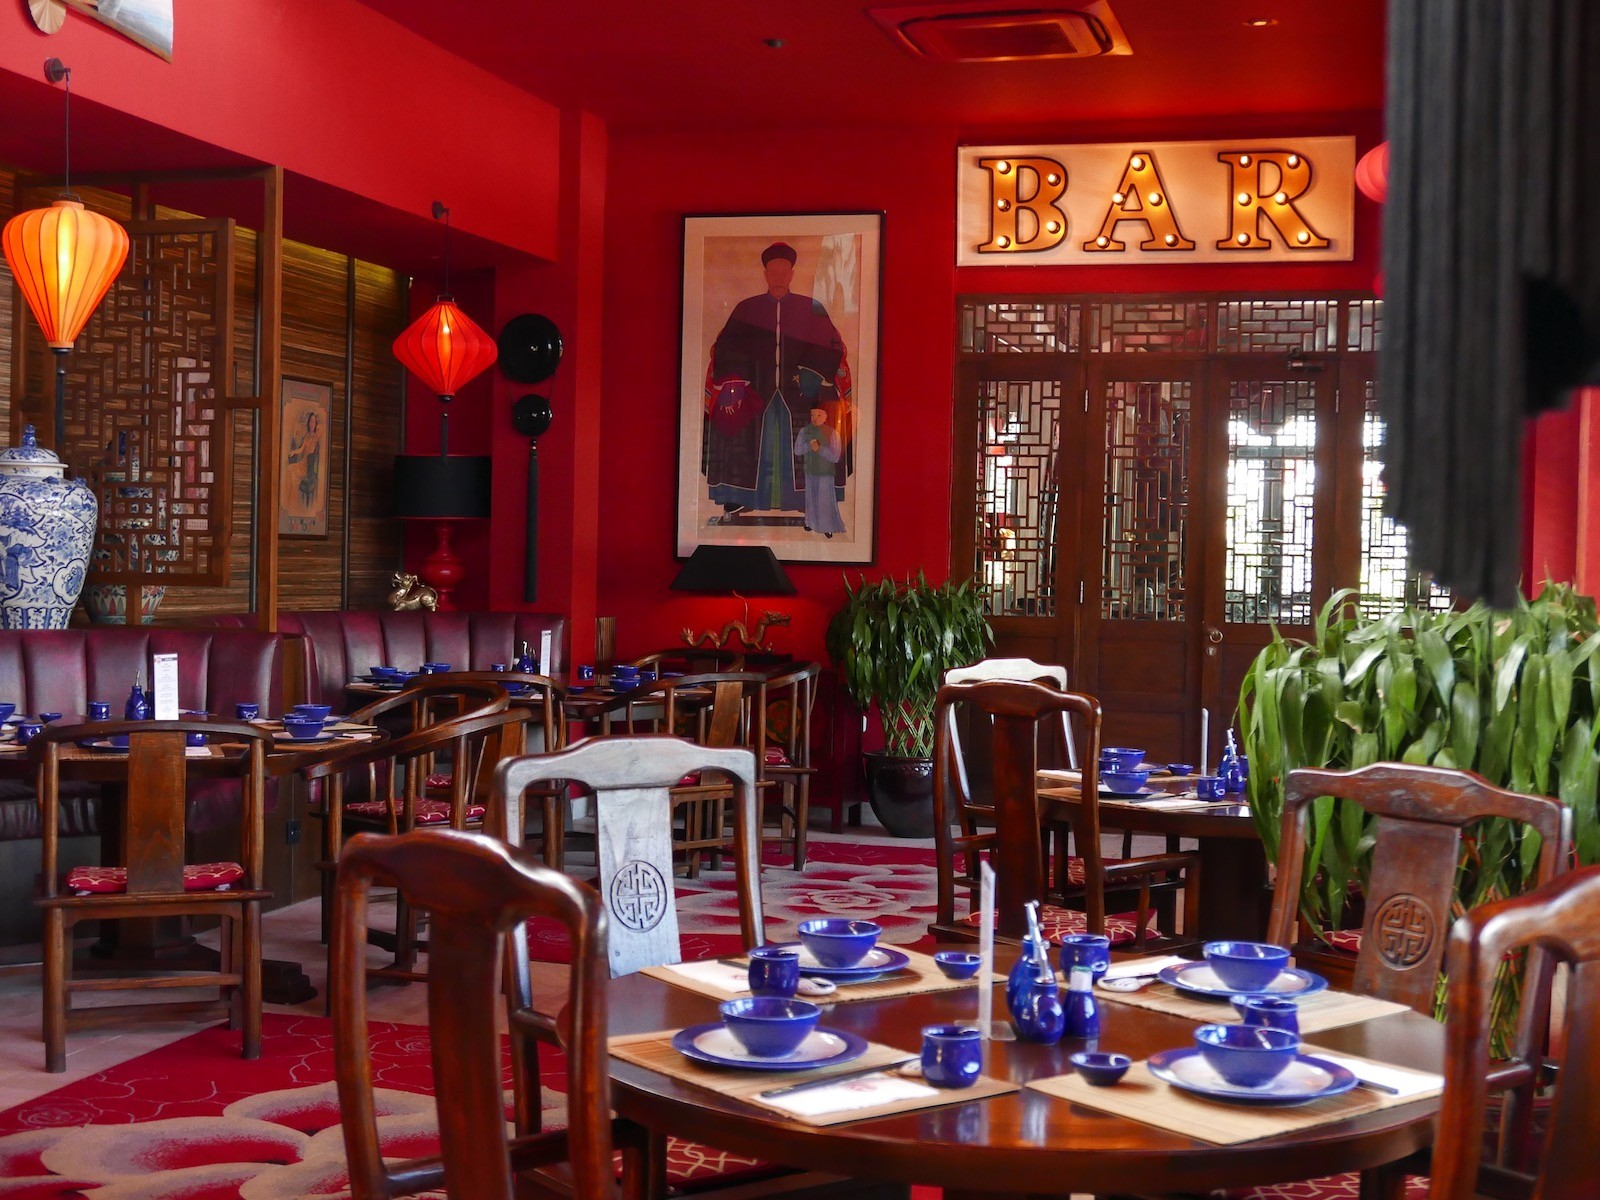 Happy chappy chinese restaurant bar in bali asia - Chinese restaurant interior pictures ...